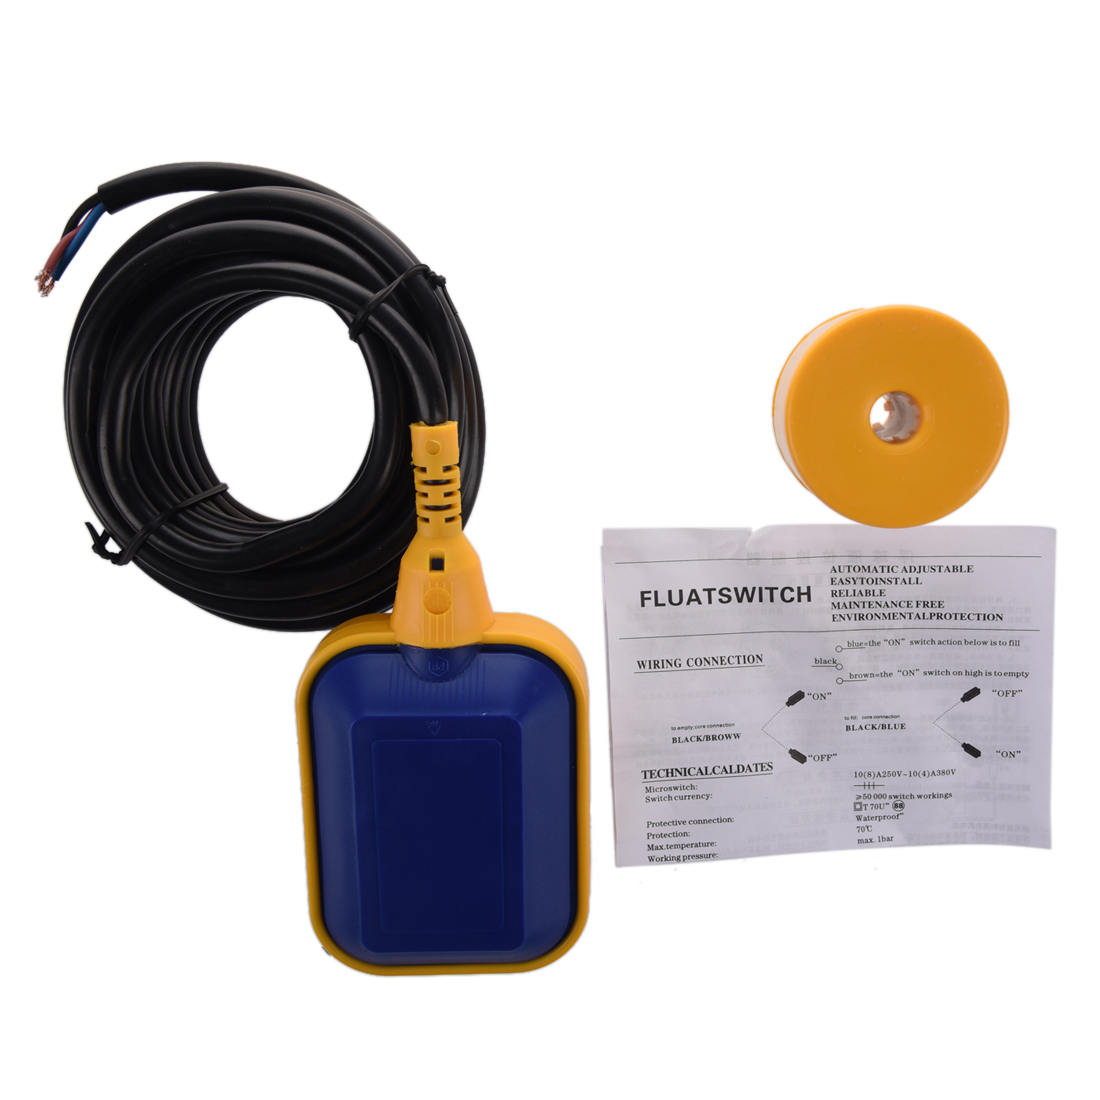 New Float Switch Liquid Fluid Water Level Controller Sensor 4M 13.1ft THK2 mj uqk 6 mini submersible pump with float switch small flow high chemical resistance oil tank level switch liquid level sensor